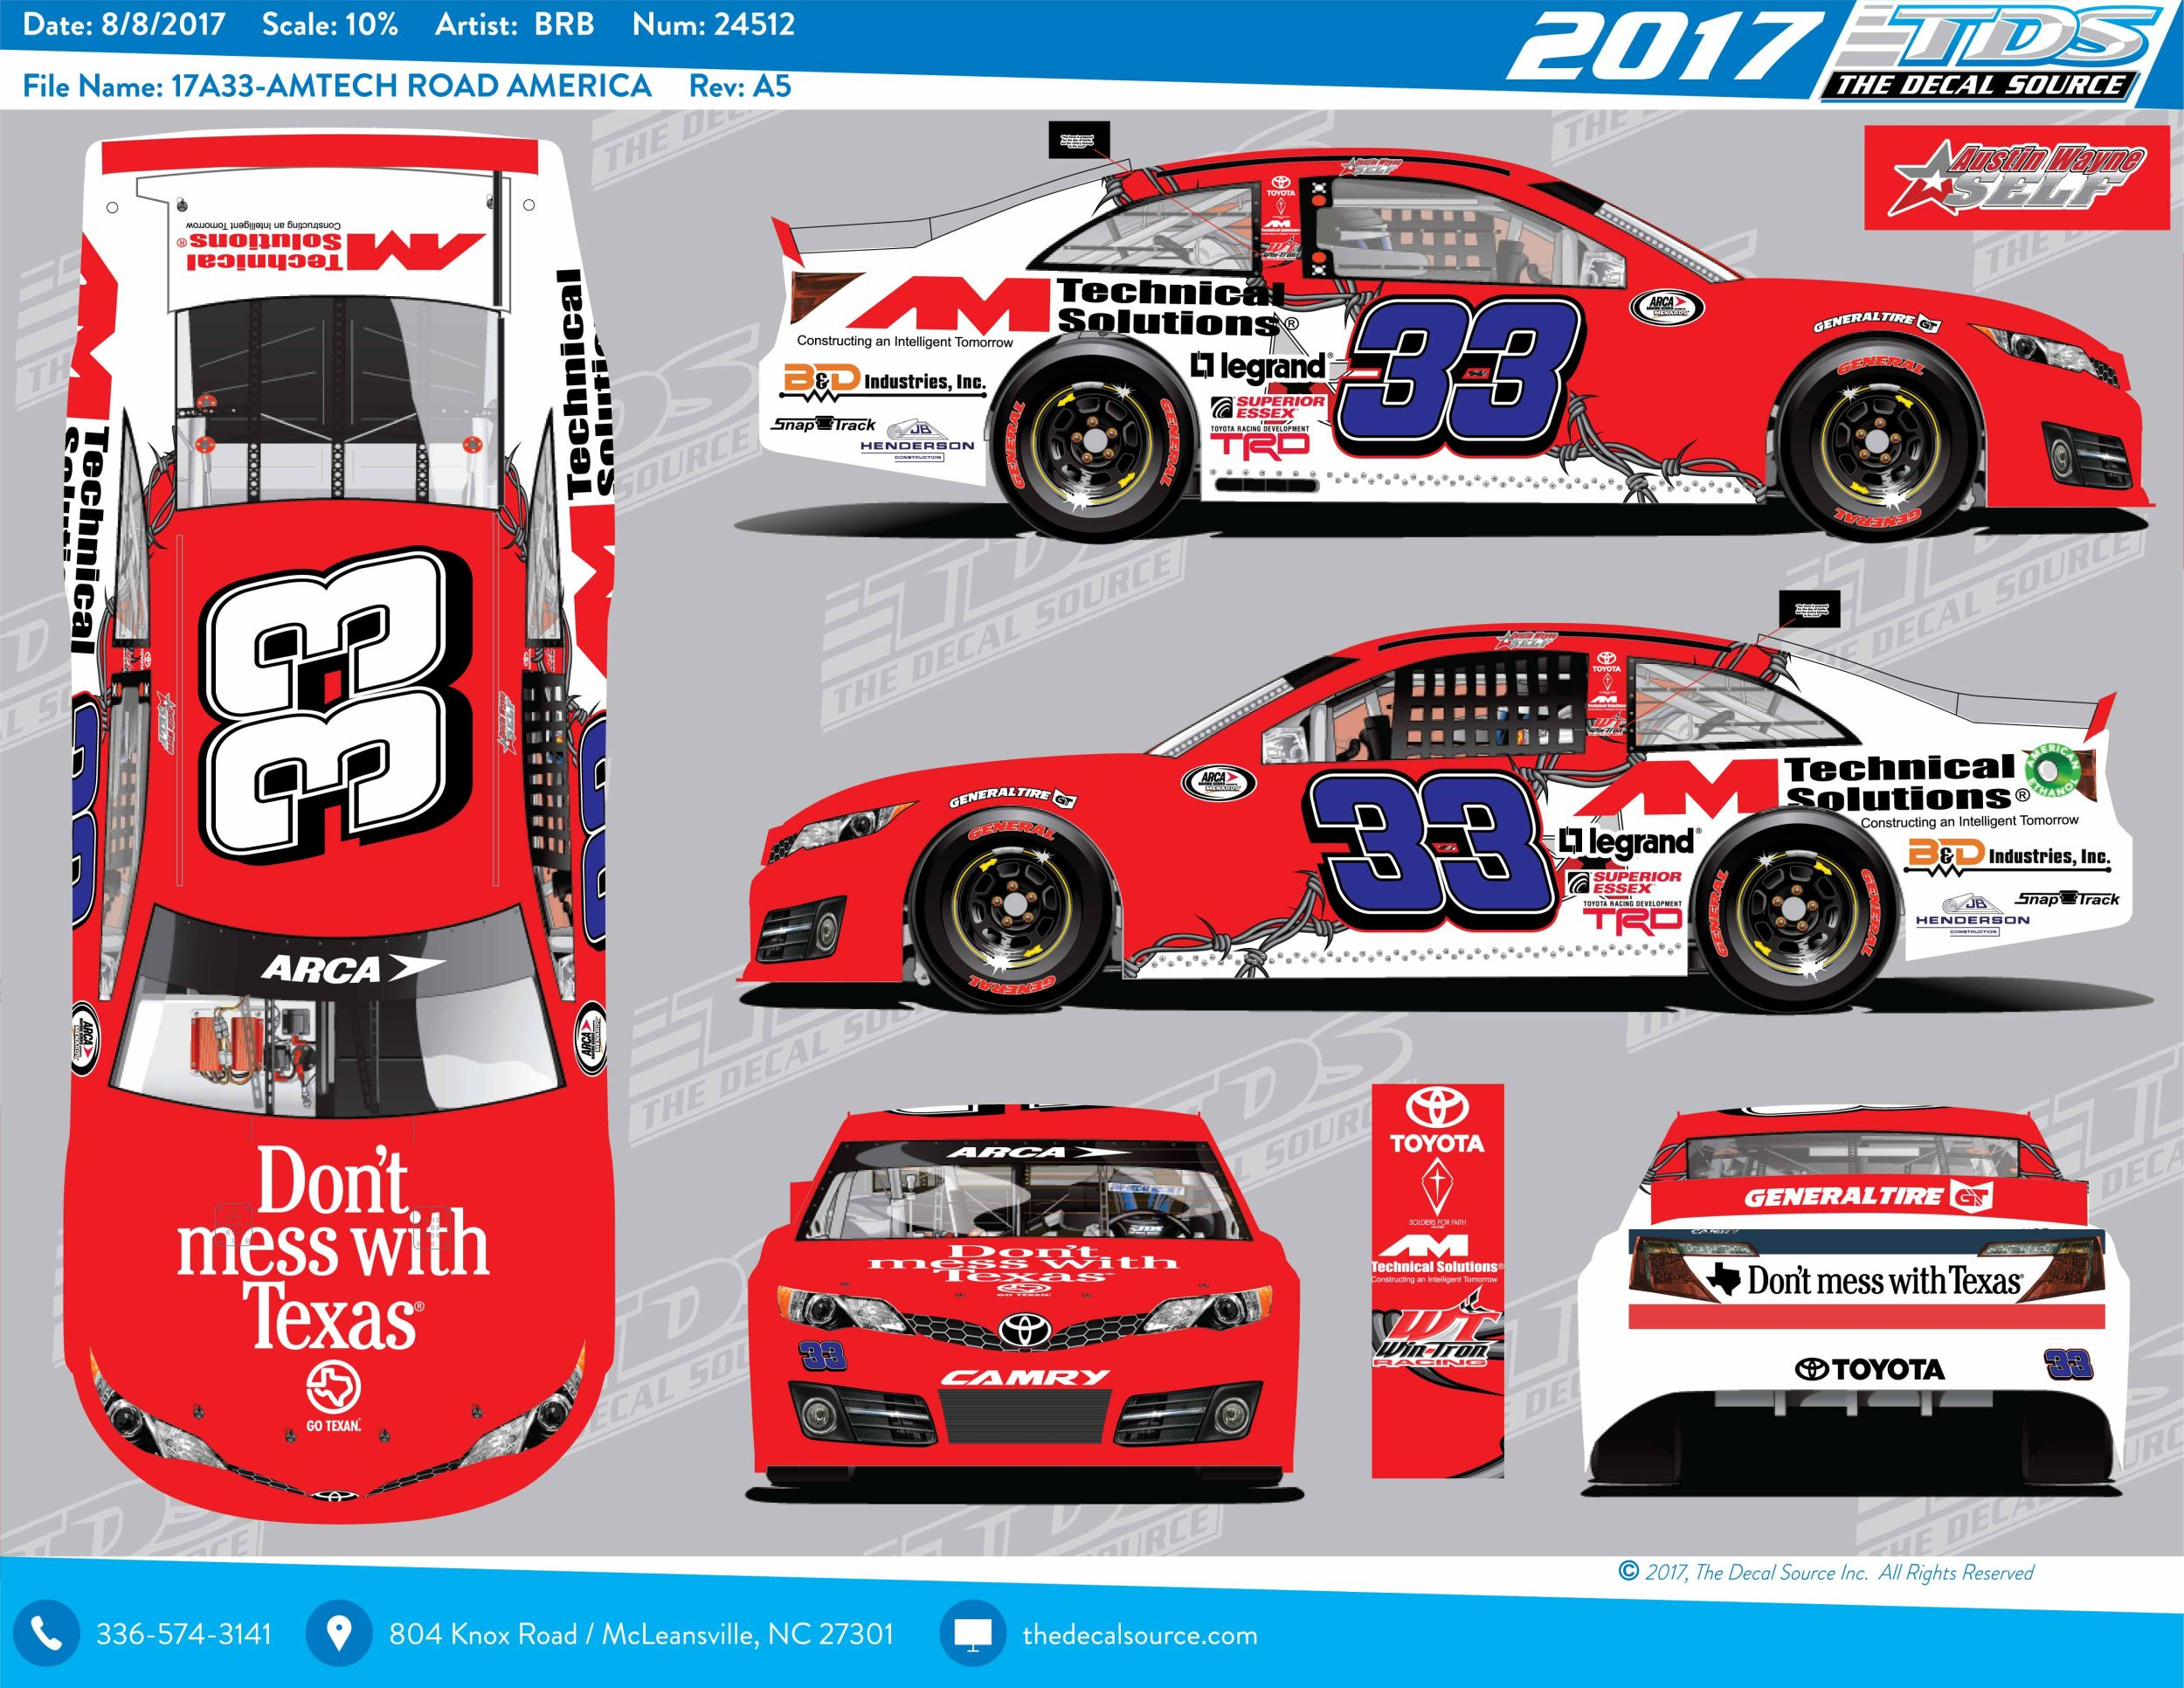 austin wayne self excited for arca return in road america debut rh catchfence com